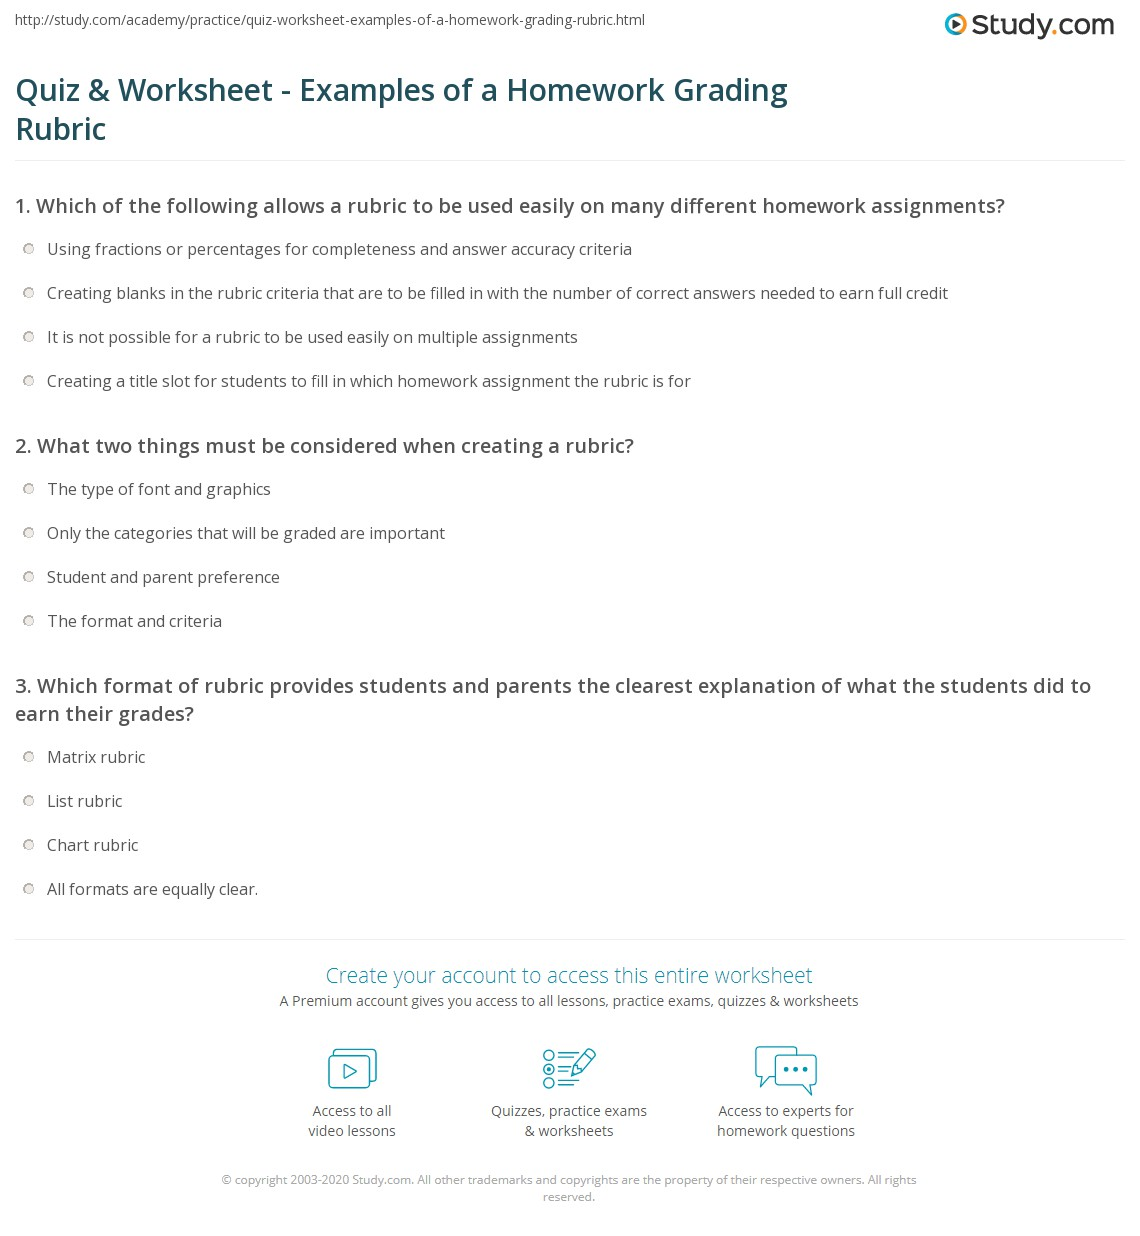 Quiz & Worksheet - Examples of a Homework Grading Rubric | Study.com